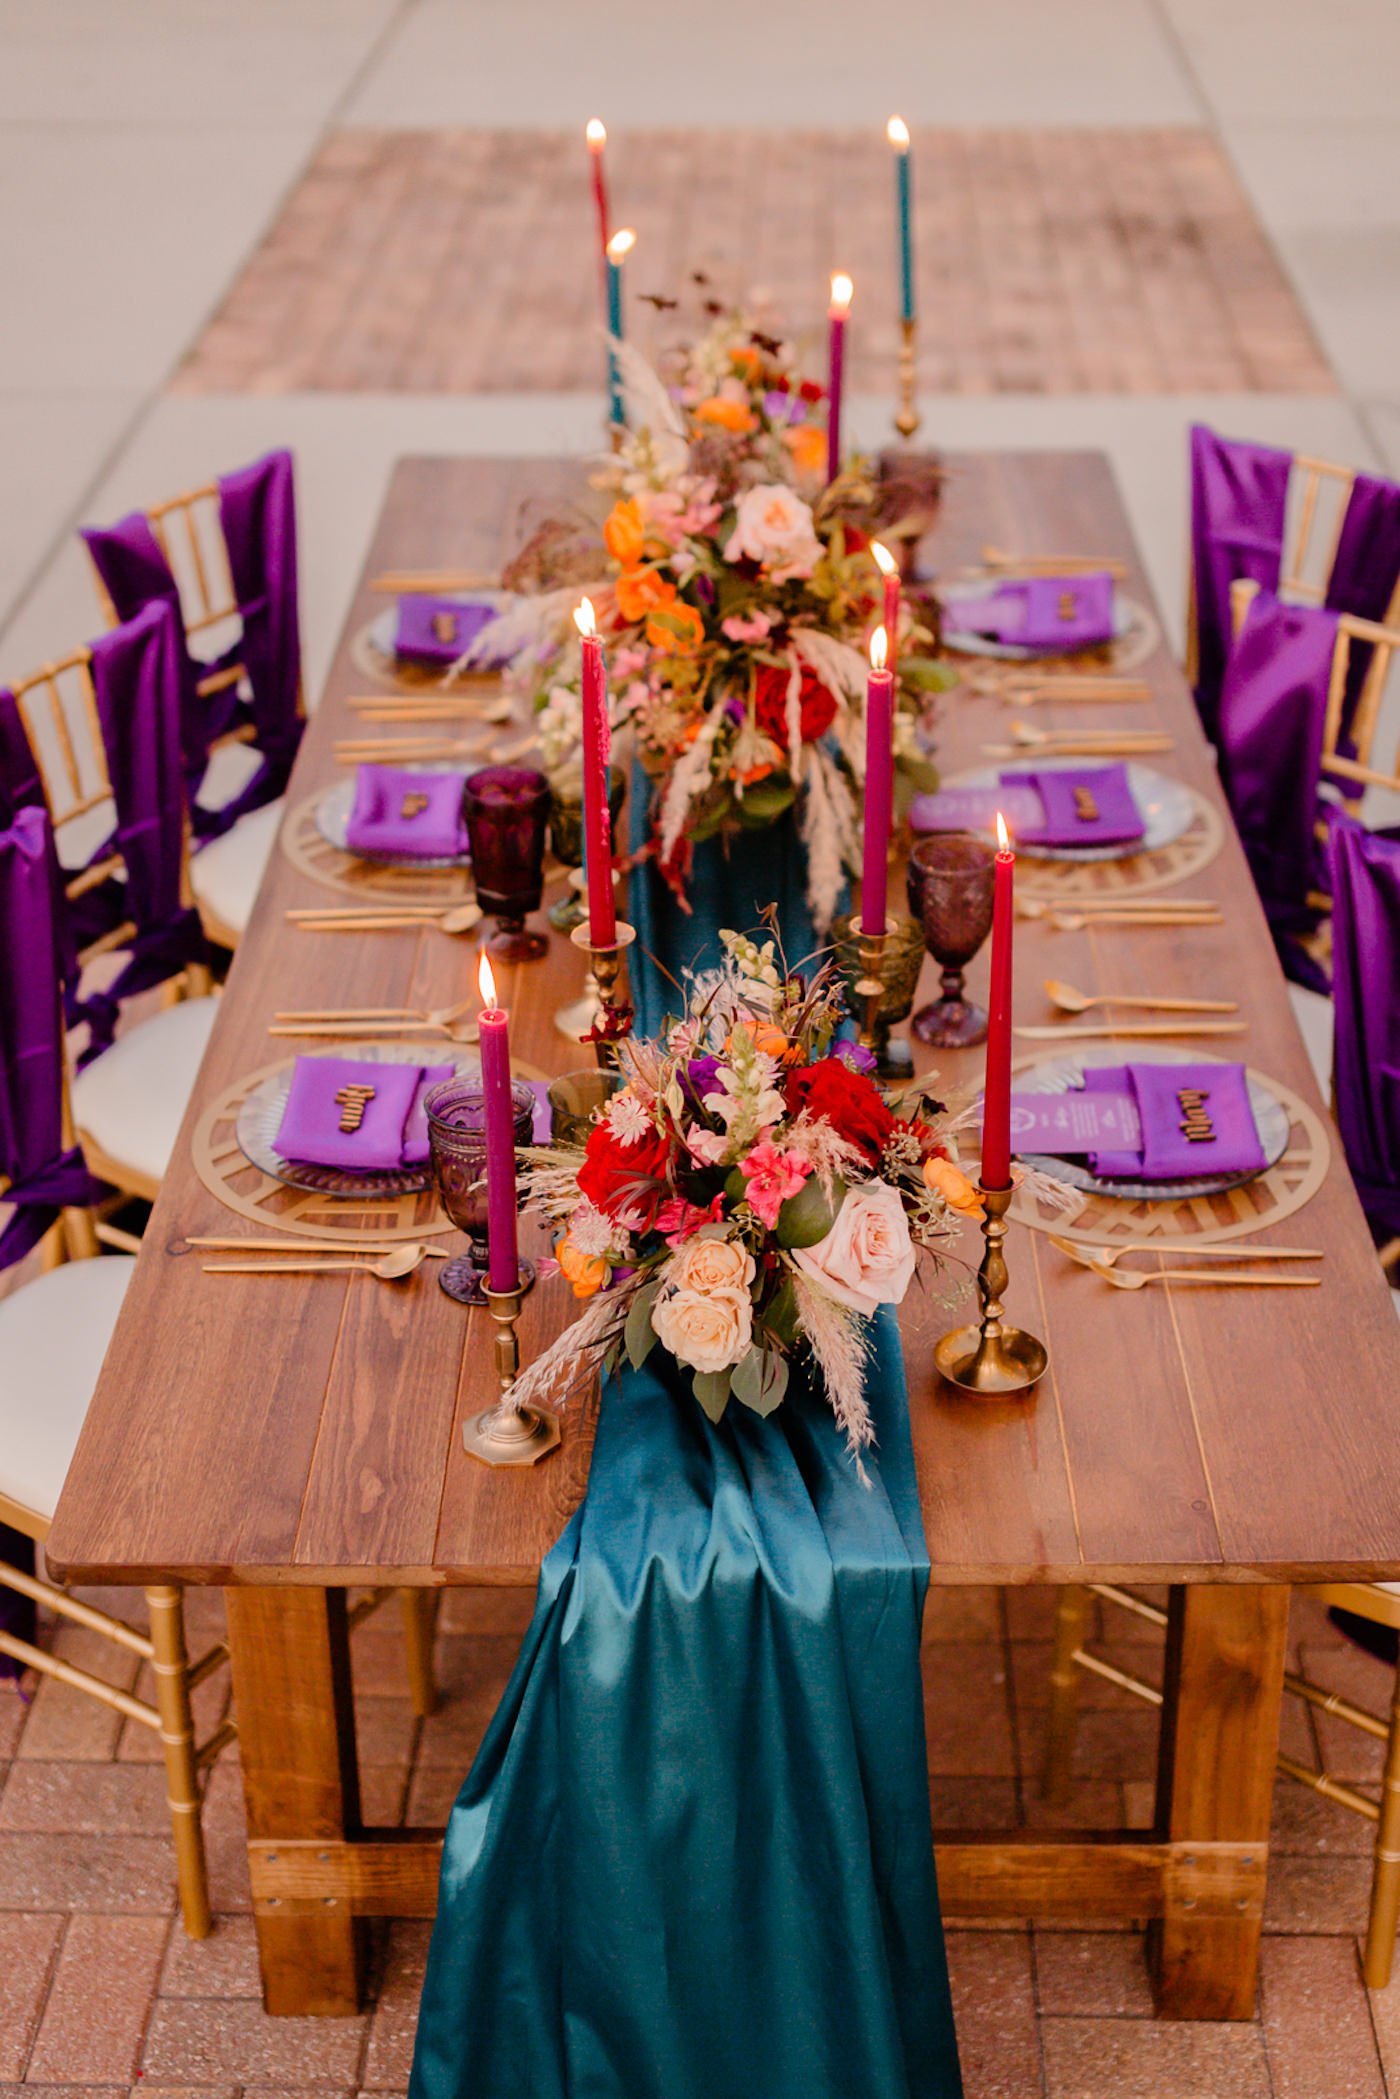 Boho Glam Wedding Reception Table with Orange Pink and Red Floral Arrangement Centerpiece with Pampas Grass | Tampa Wedding Florist Monarch Events and Designs | Wood Farm Table with Teal Turquoise Runner and Colorful Taper Candles and Purple Sashes on Gold Chiavari Chairs